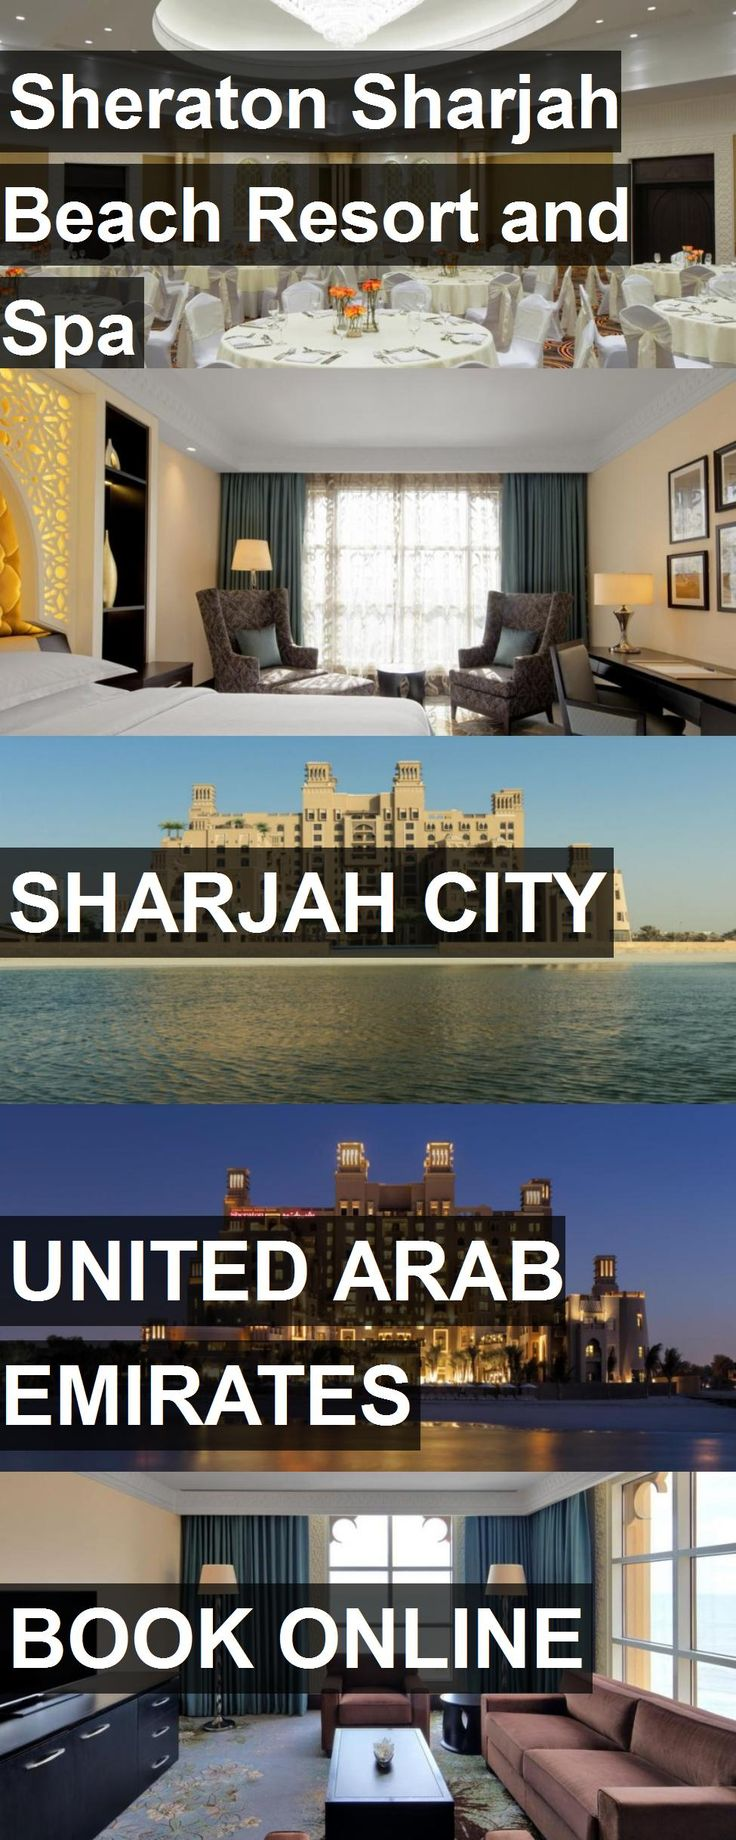 Hotel Sheraton Sharjah Beach Resort and Spa in Sharjah City, United Arab Emirates. For more information, photos, reviews and best prices please follow the link. #UnitedArabEmirates #SharjahCity #travel #vacation #hotel